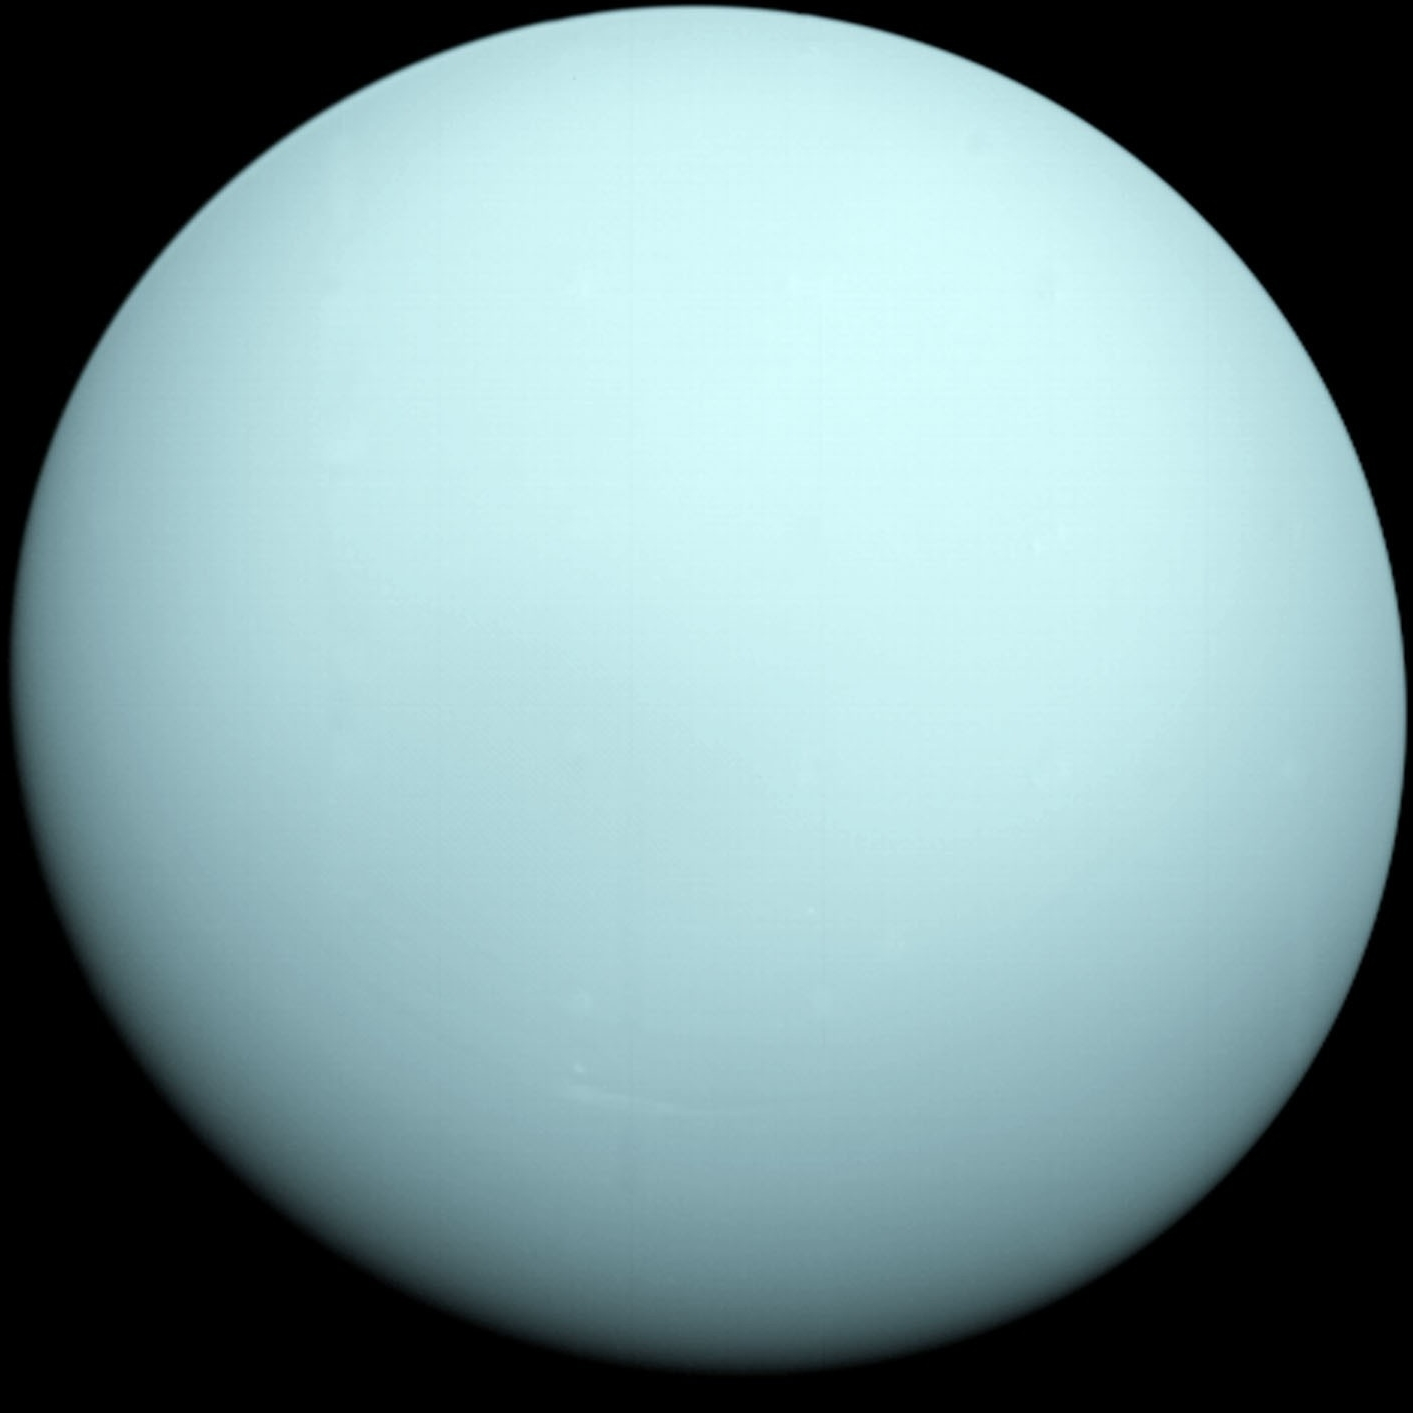 [[Uranus]] taken by the spacecraft Voyager 2 in 1986  -Source=http://www.ifa.hawaii.edu/~barnes/ast110_06/gphah.html -Date= December 16, 1986 -Author=NASA/JPL/Voyager